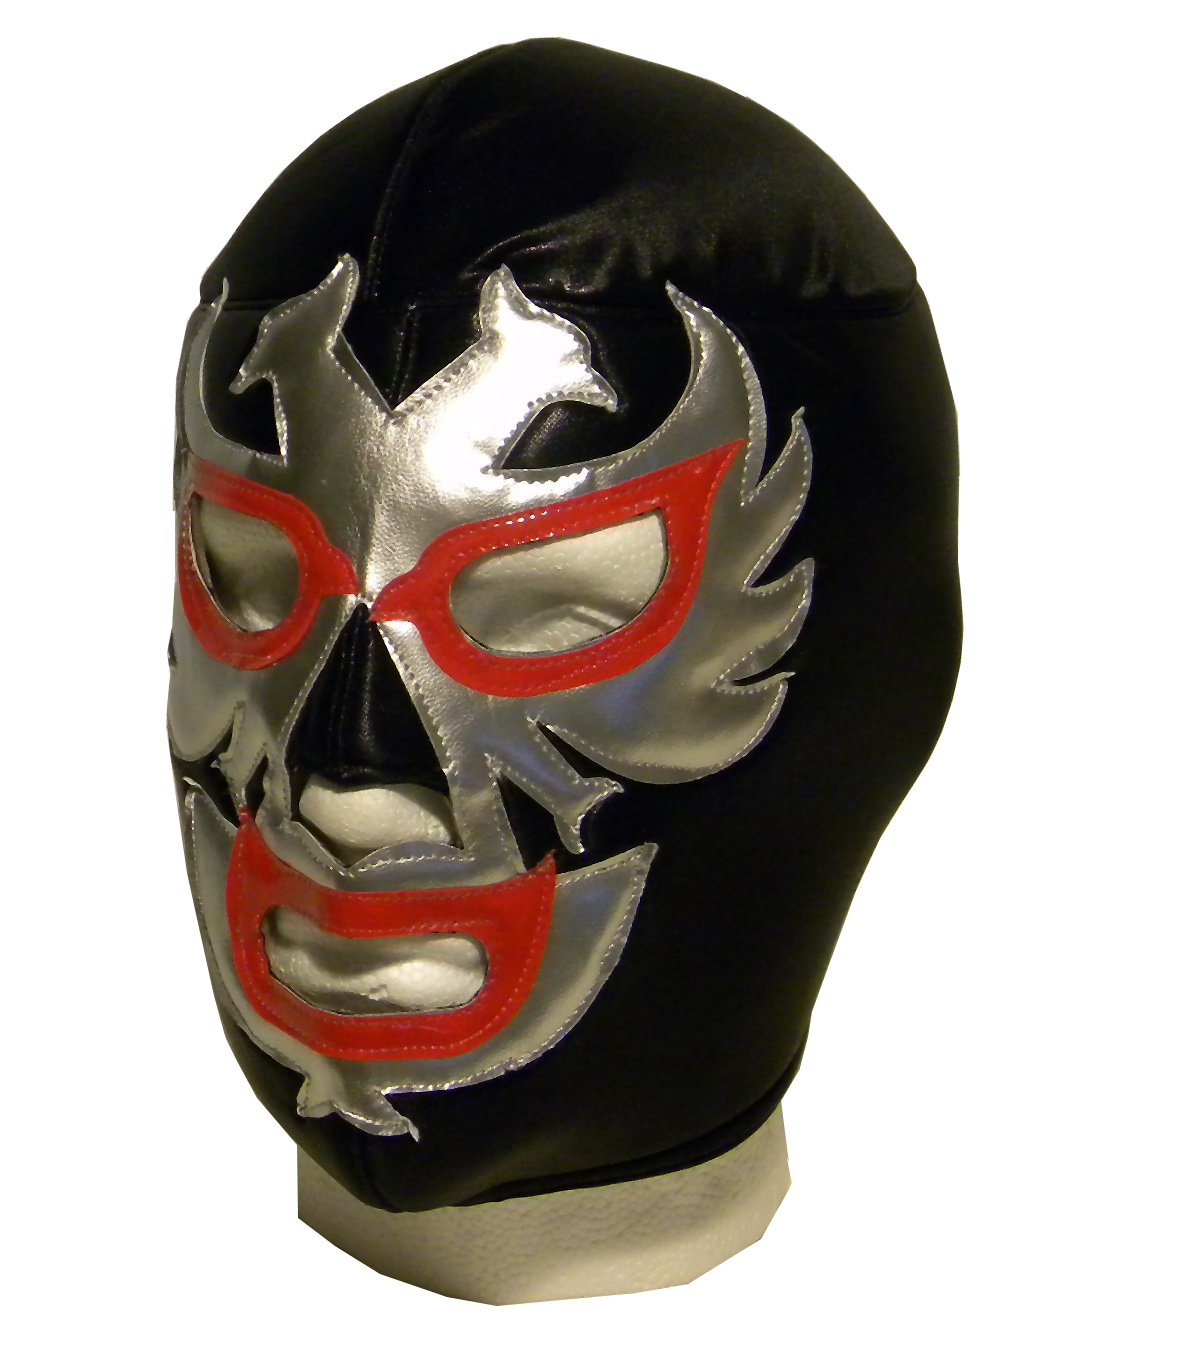 Luchadora ® Imperial masque lucha libre wrestling catch mexicaine 000985-fba